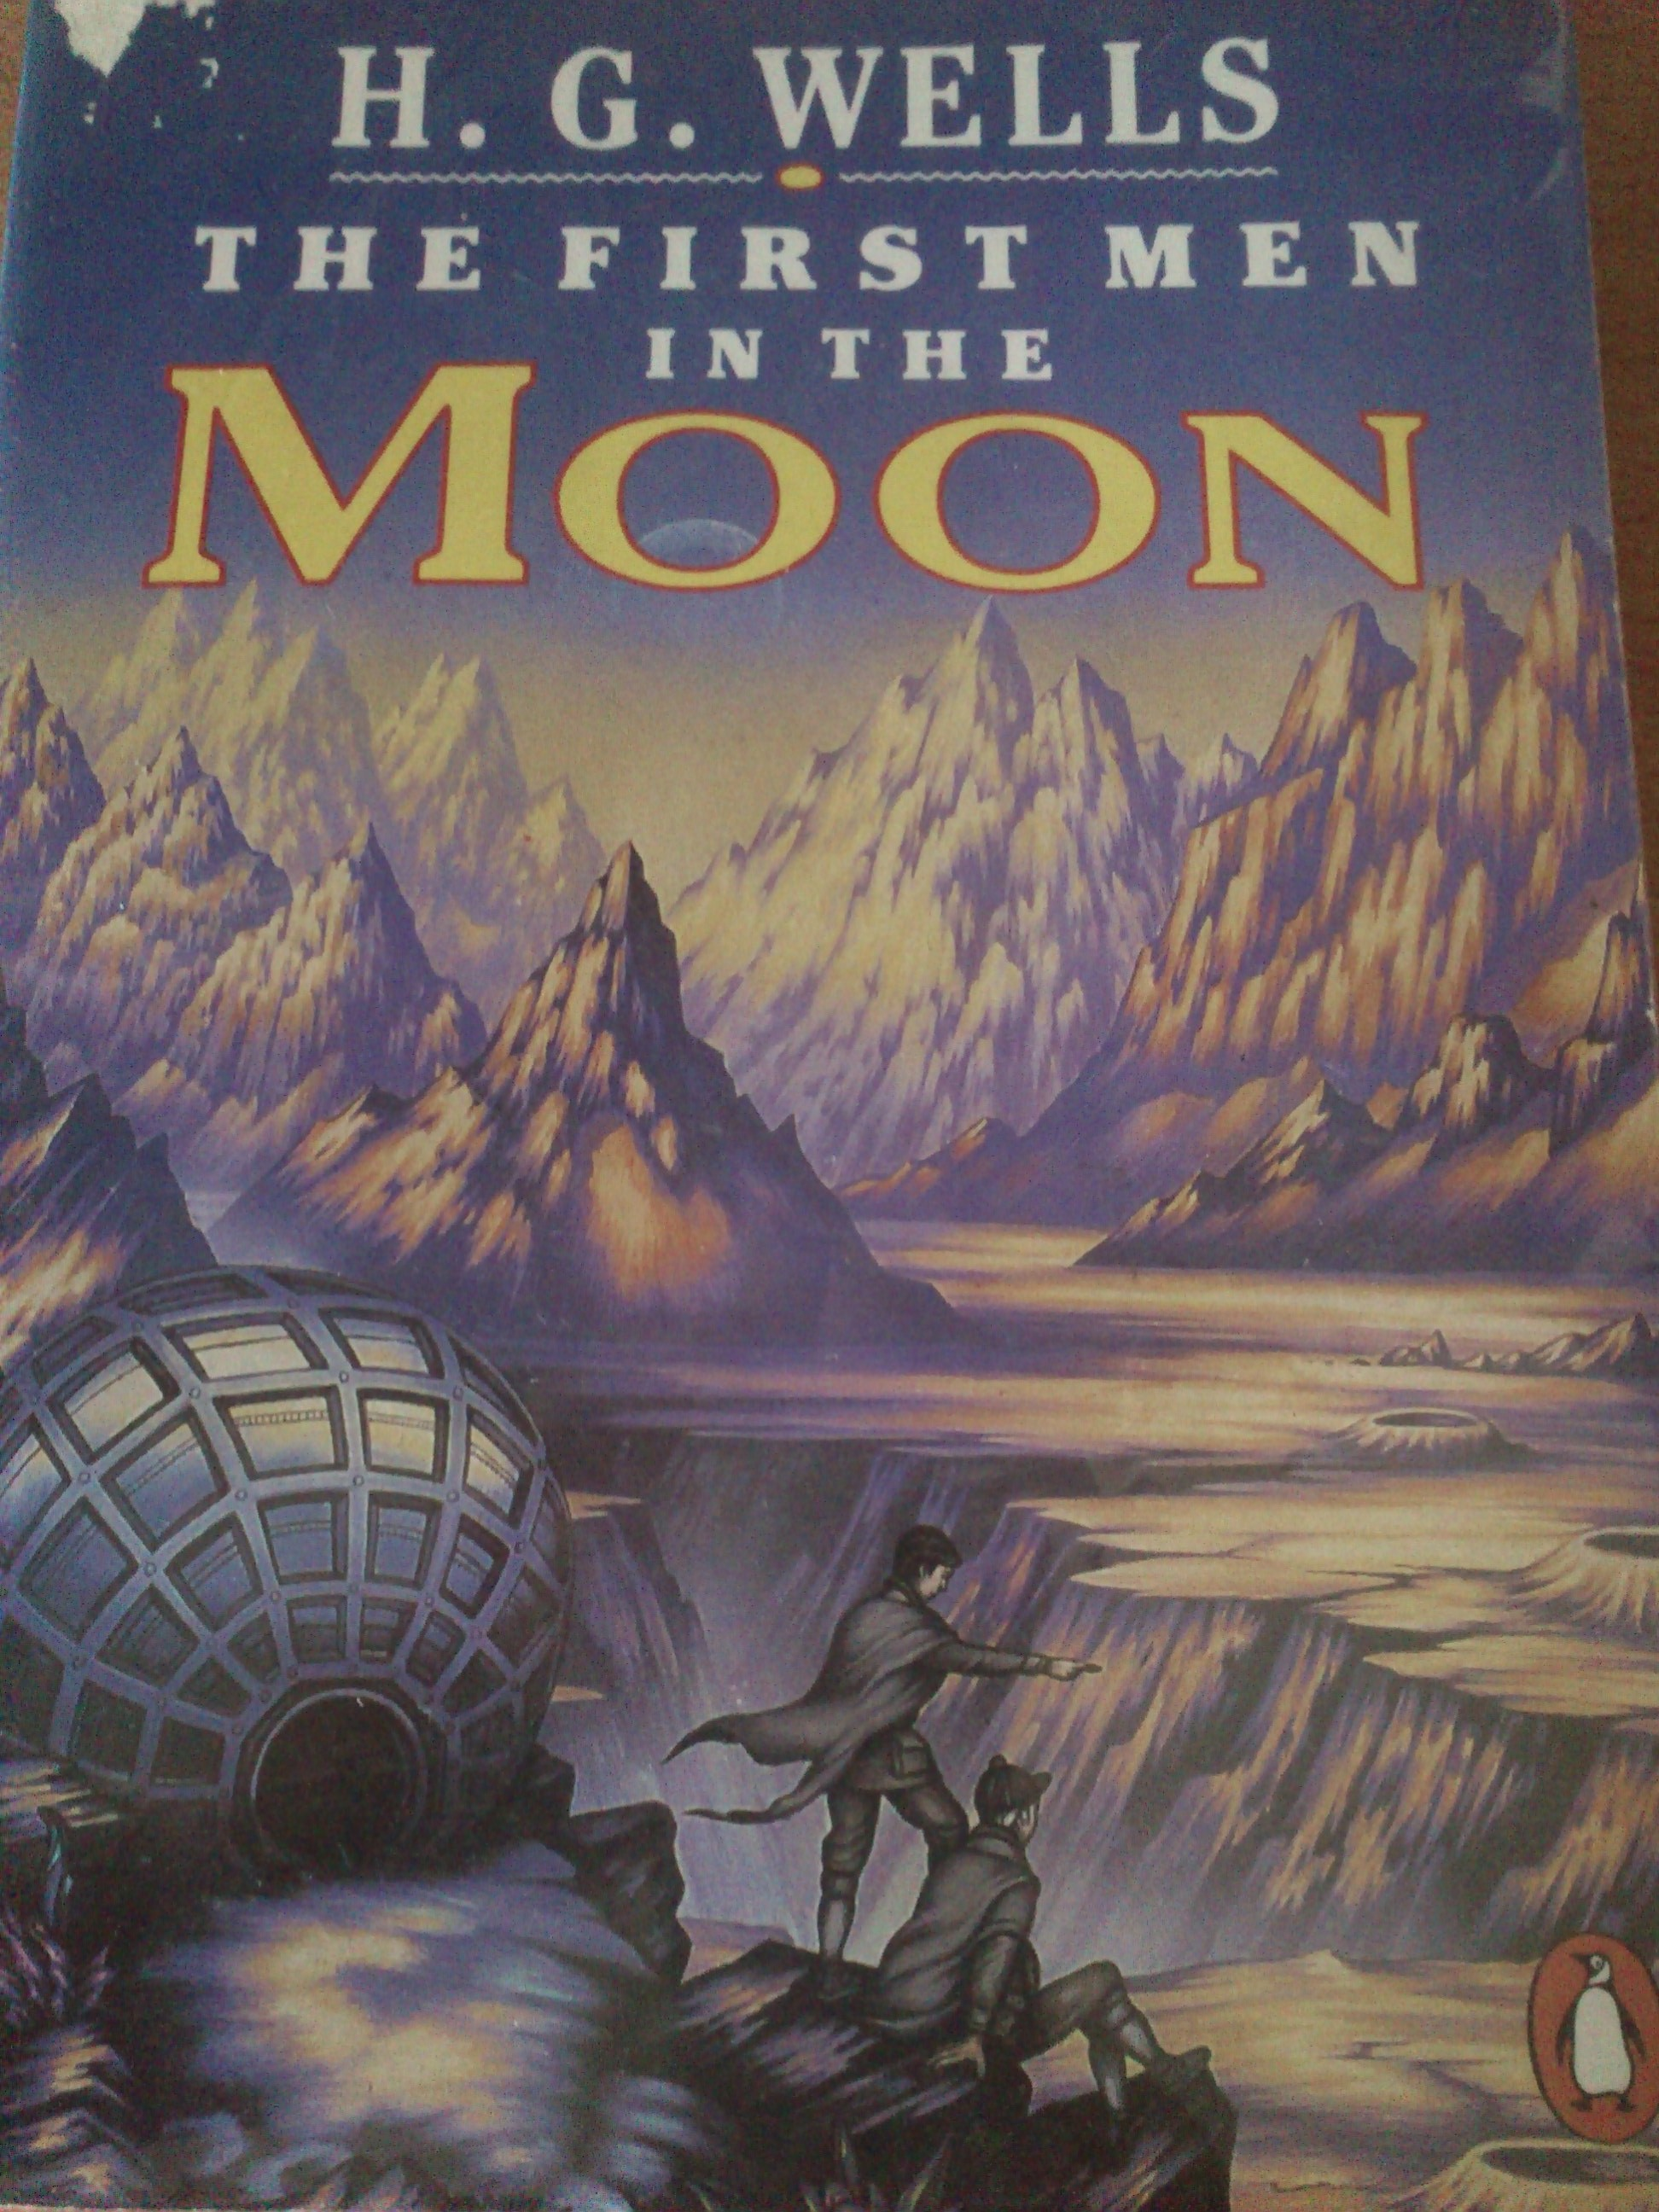 The First Men in the Moon by H G Wells